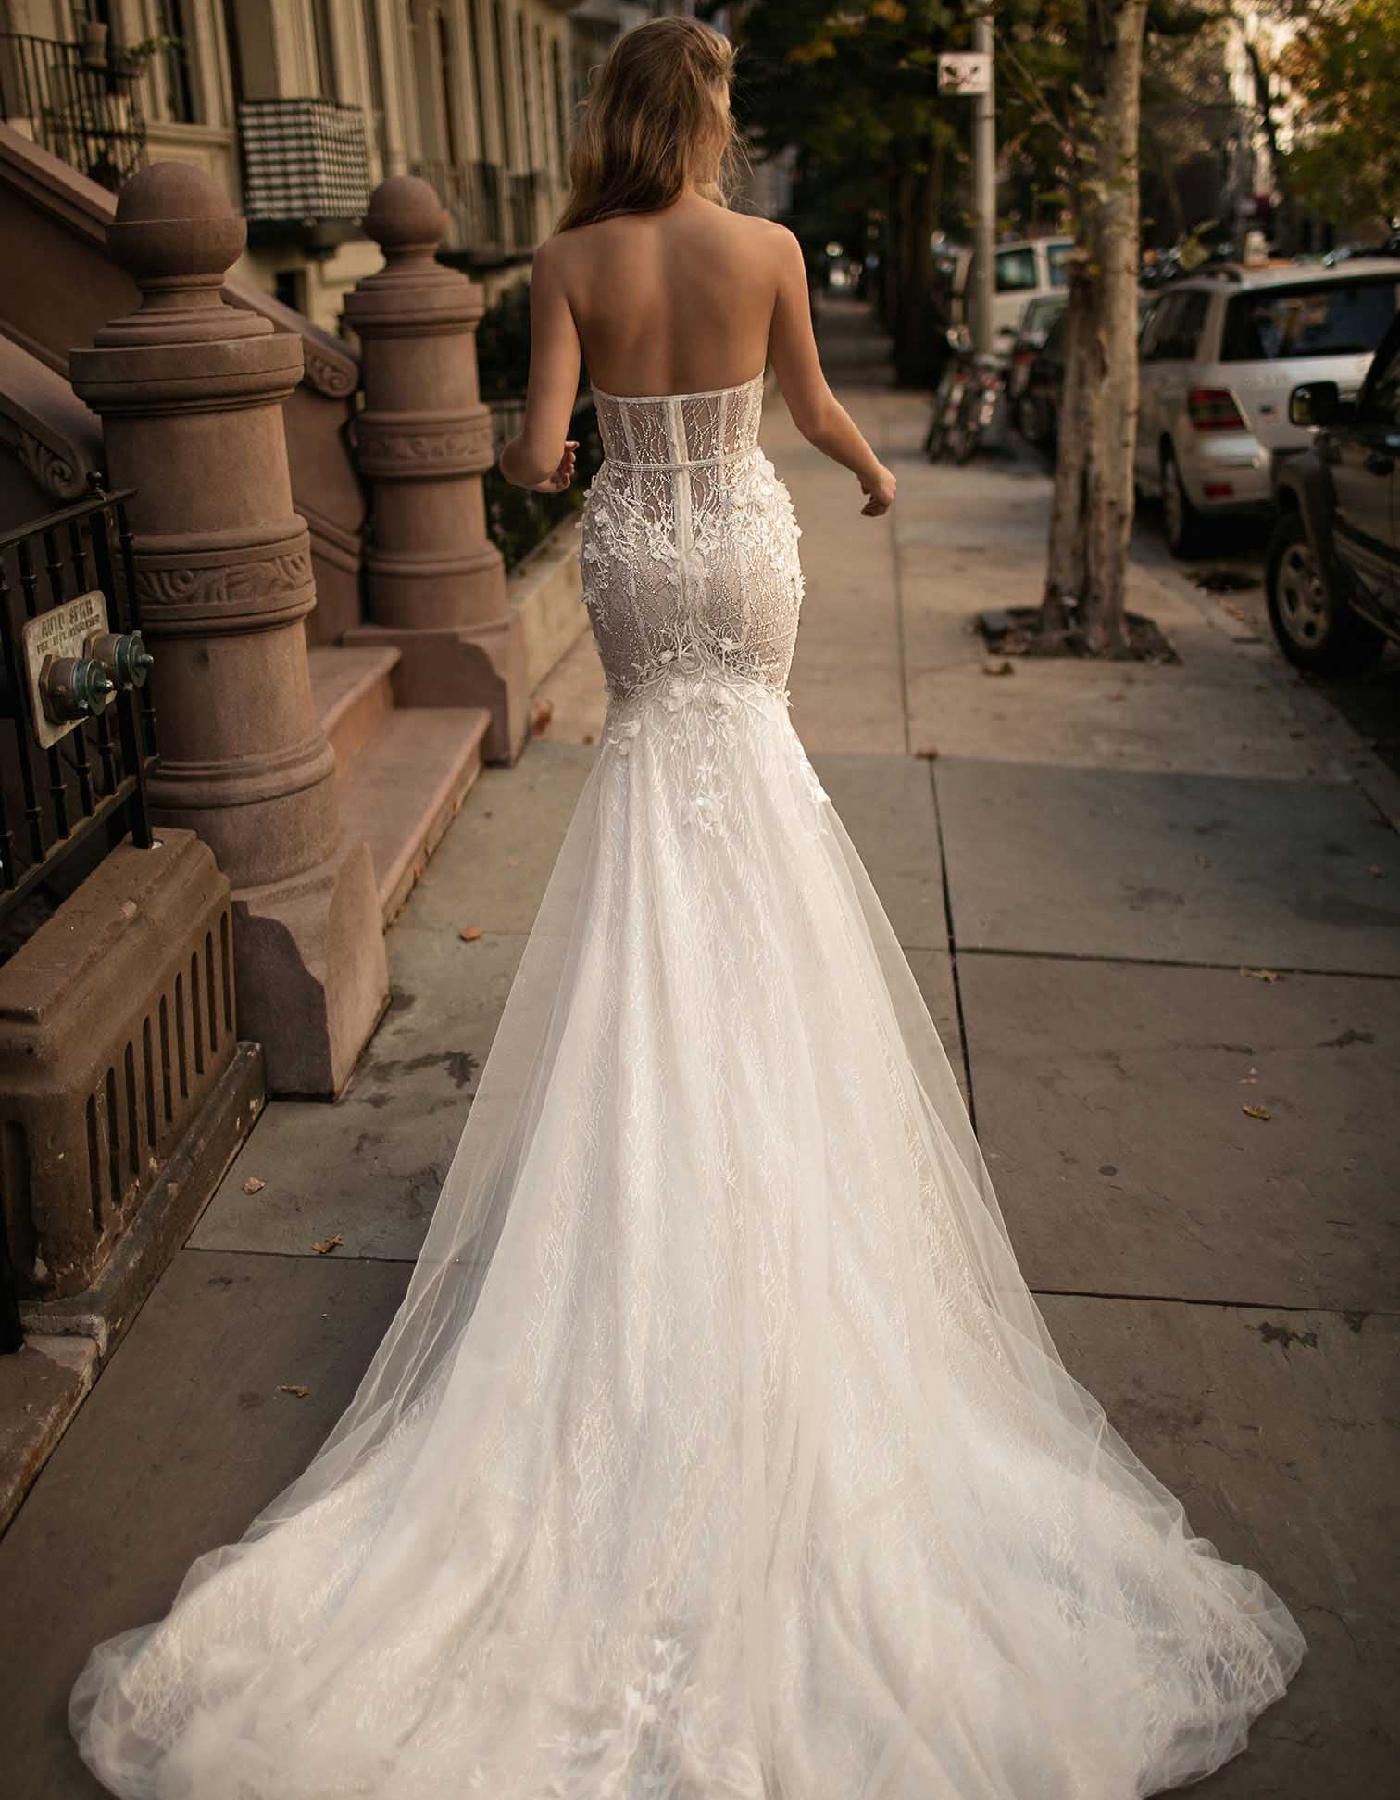 Luxury Strapless Designer Wedding Dress 17 110 By Berta